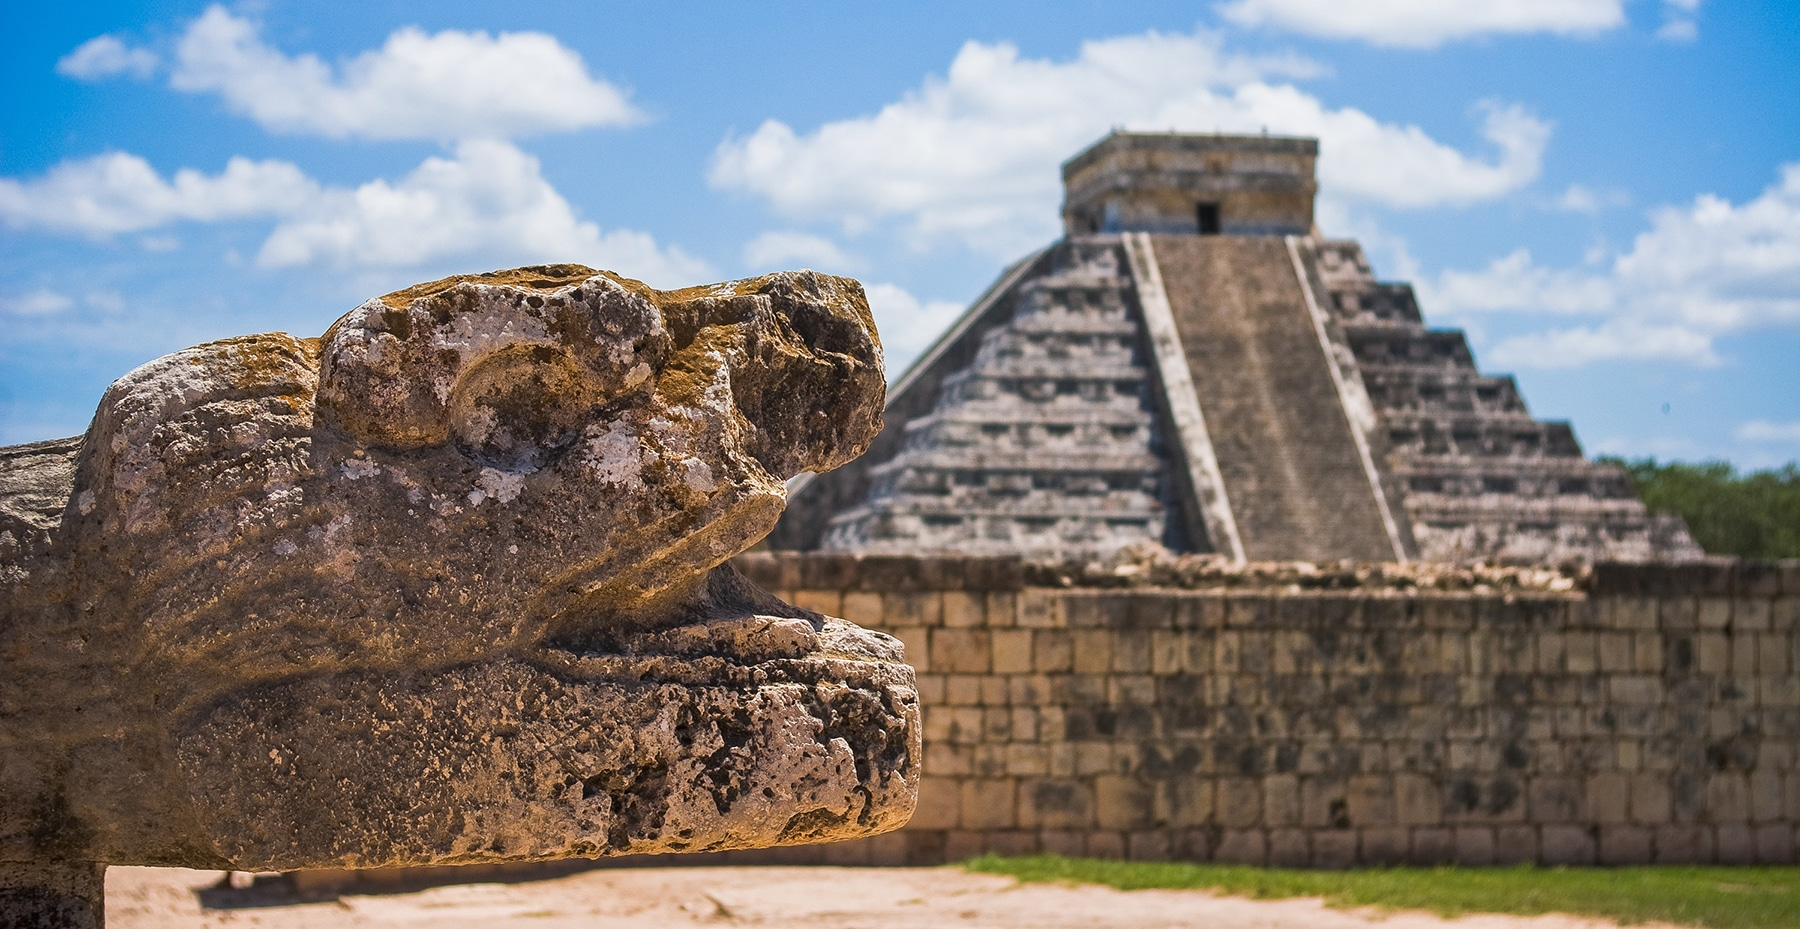 Mayan Documentary Will Show Evidence of Alien Contact, Says Mexico